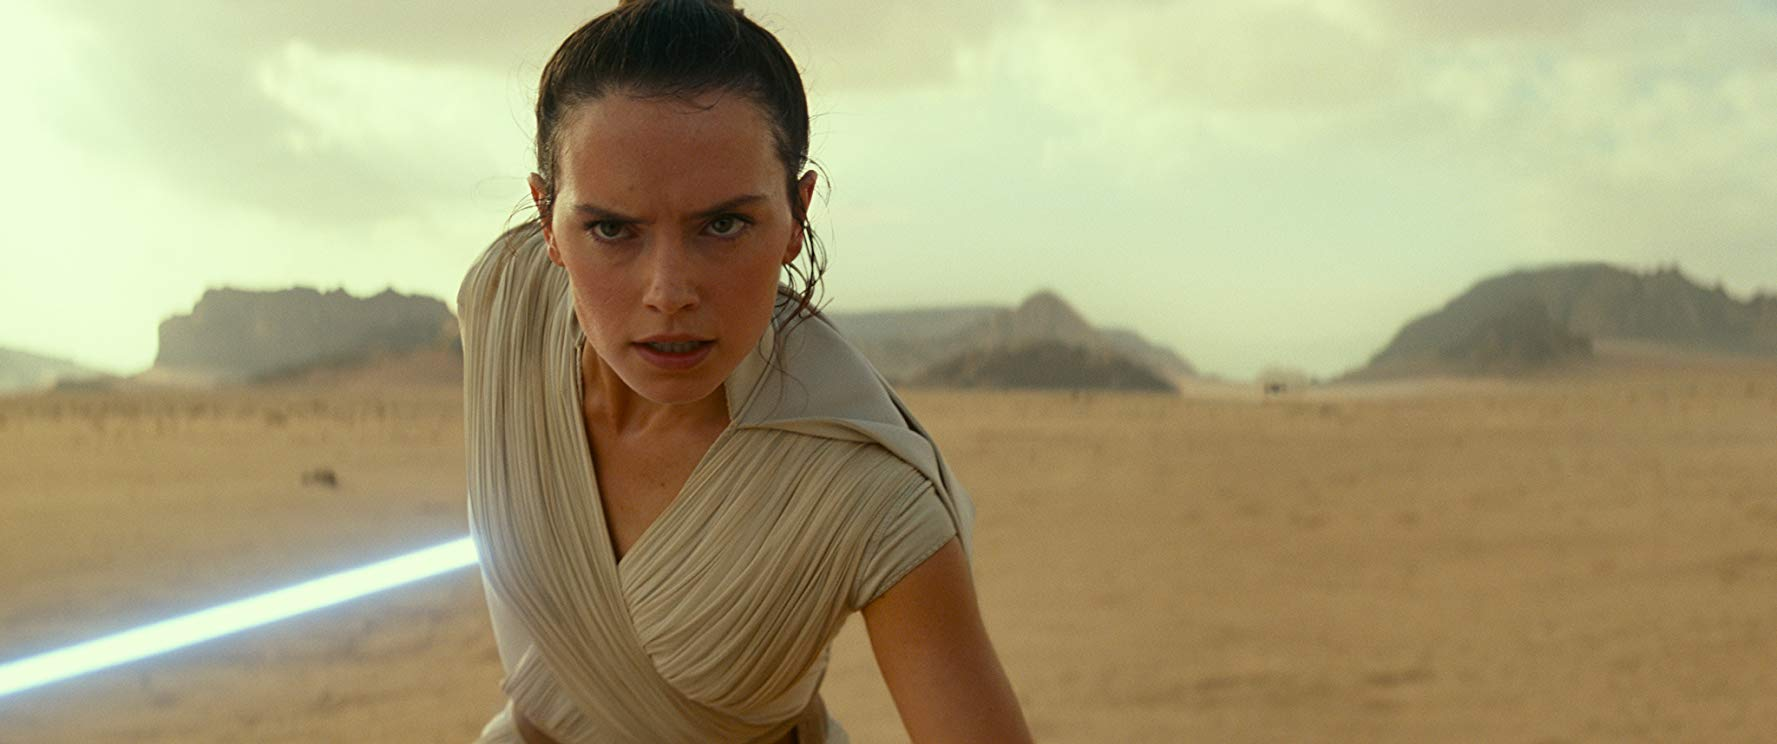 Rey S Mother And Other Rise Of Skywalker Parentage Mysteries Film